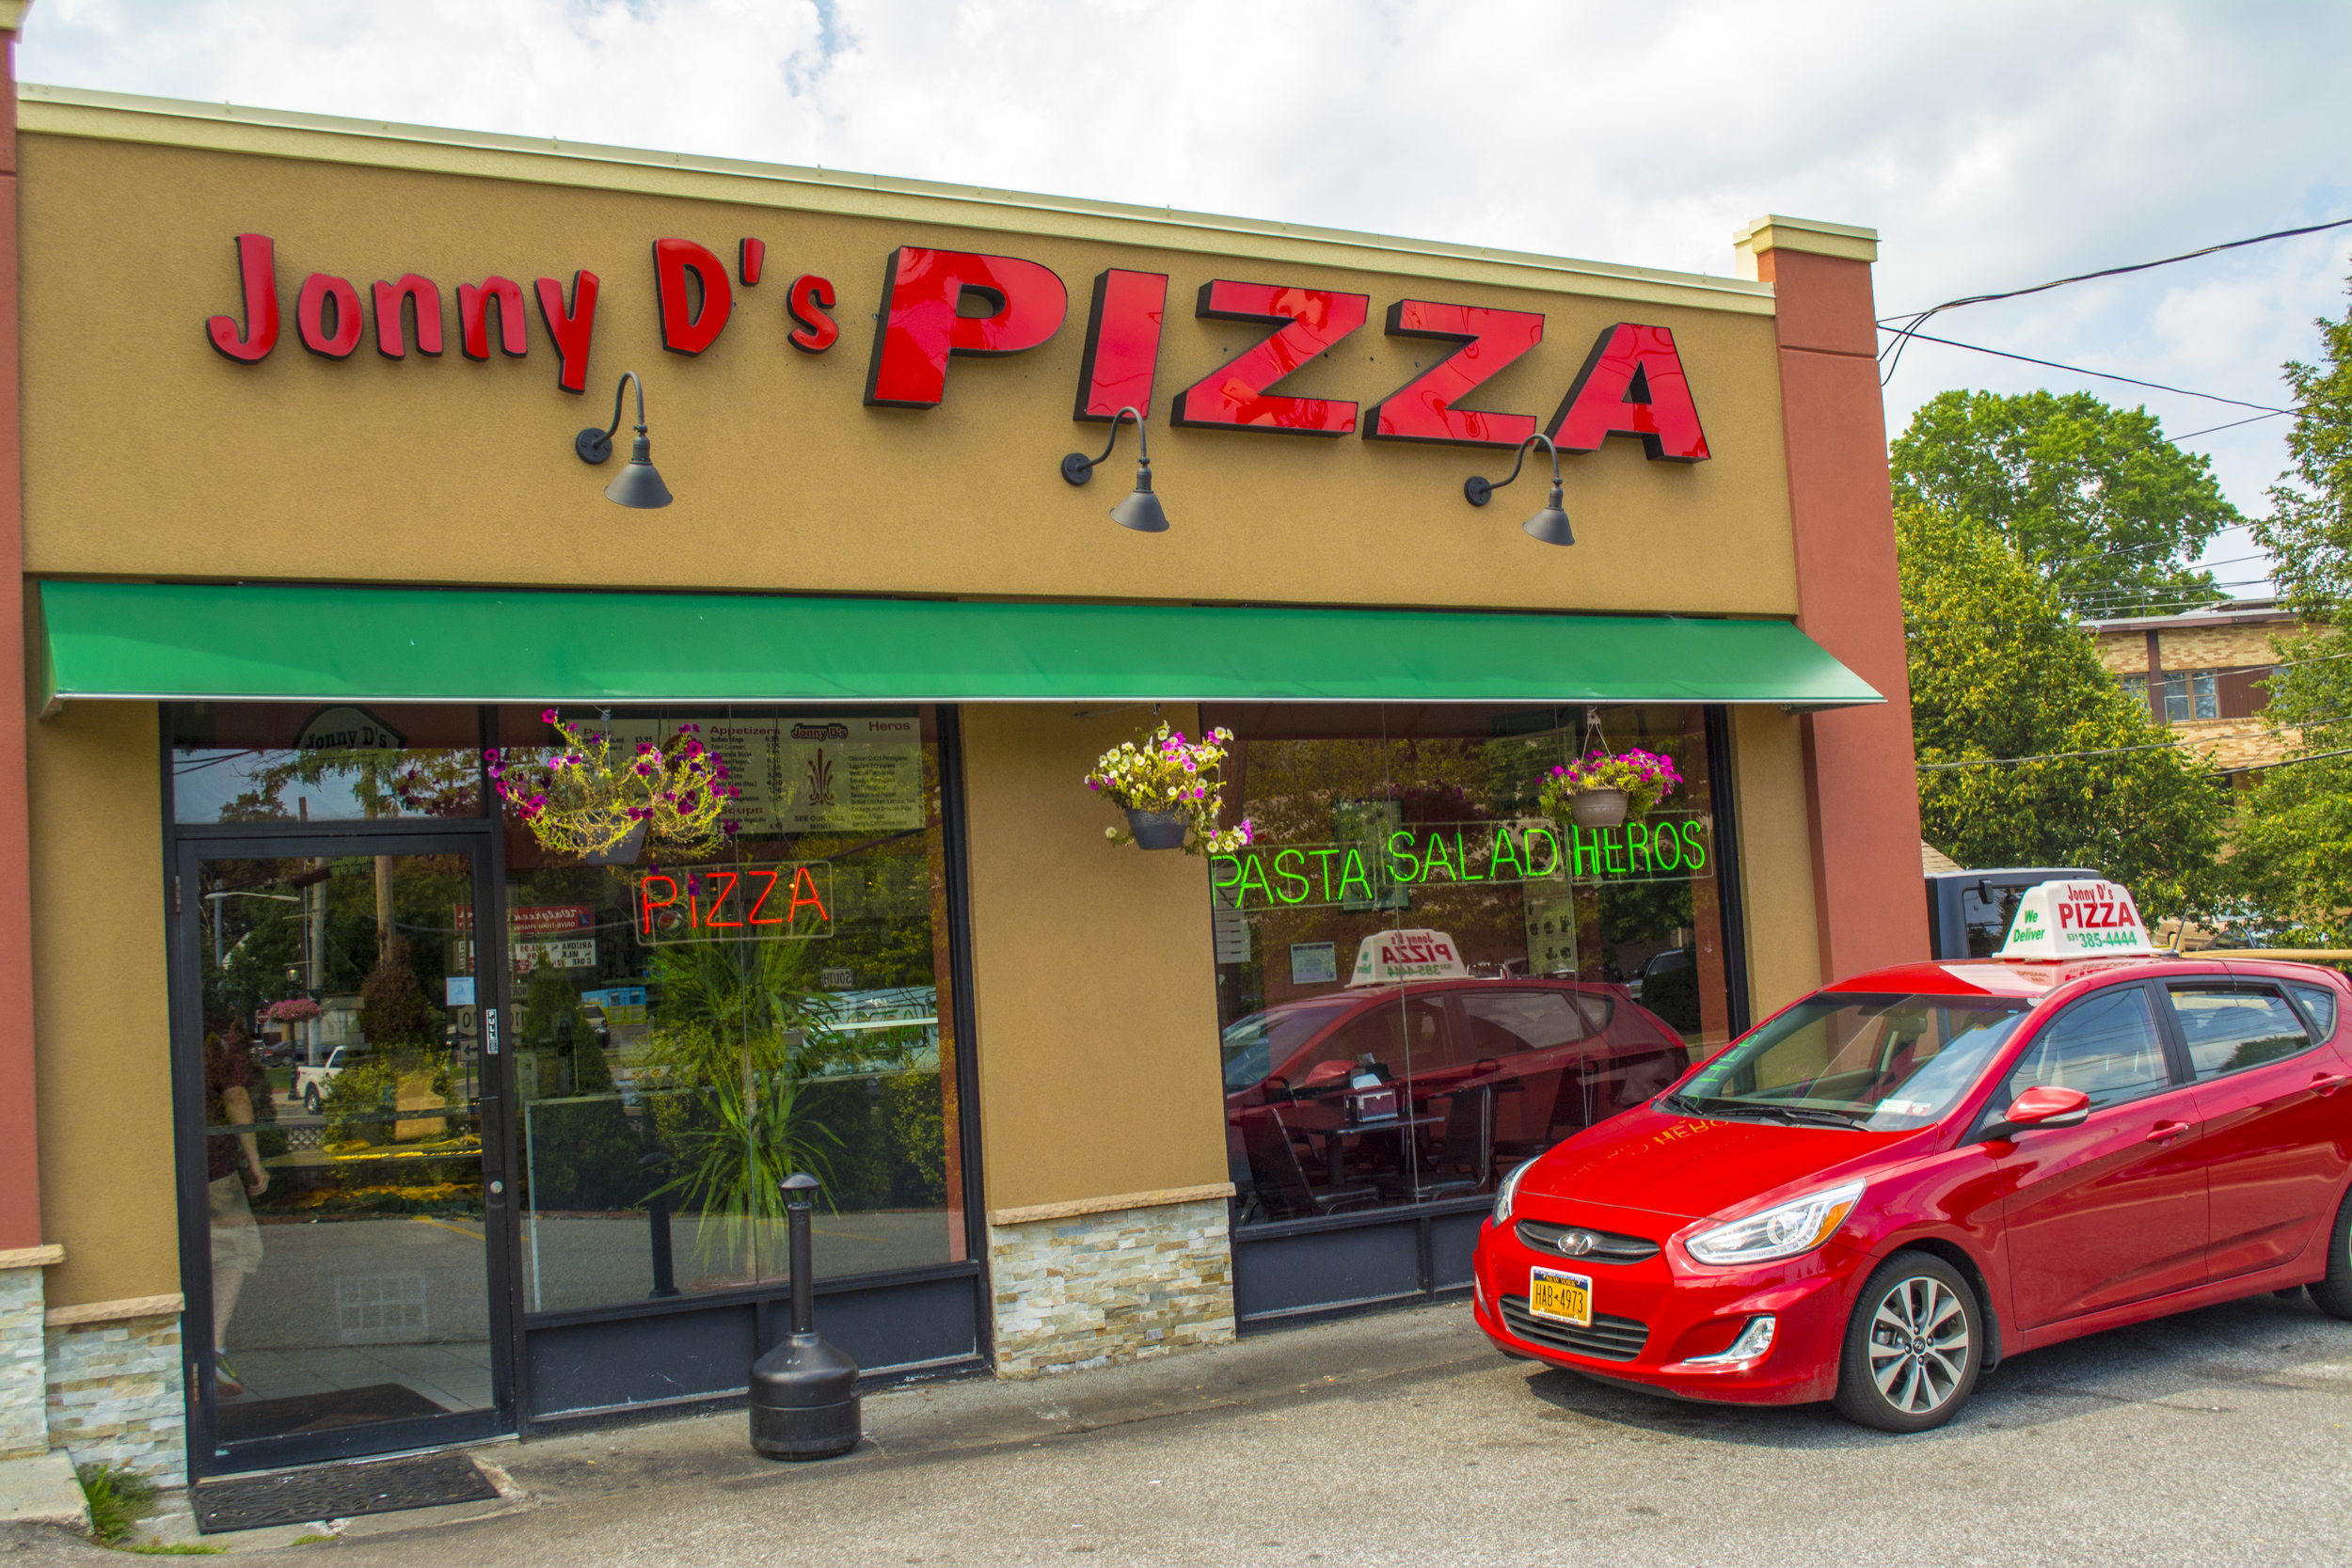 Jonny D's Pizza is located at 946 New York Ave. in Huntington. A second location is also located at 91 Broadway Greenlawn.